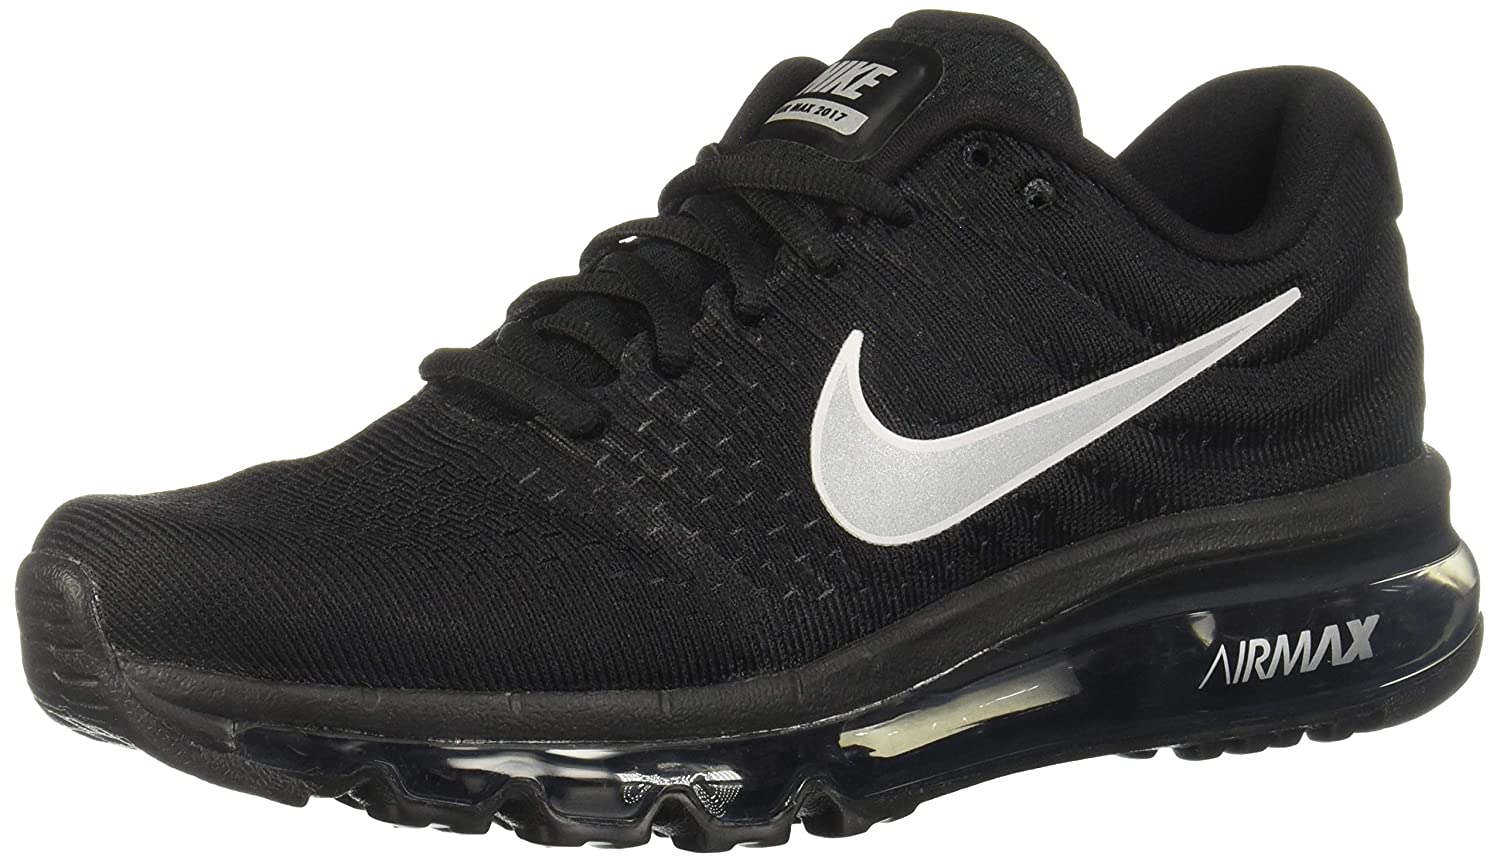 on sale a2f2a 39e26 Amazon.com   Nike Womens Air Max 2017 Running Shoes Black White Anthracite  849560-001 Size 10   Road Running